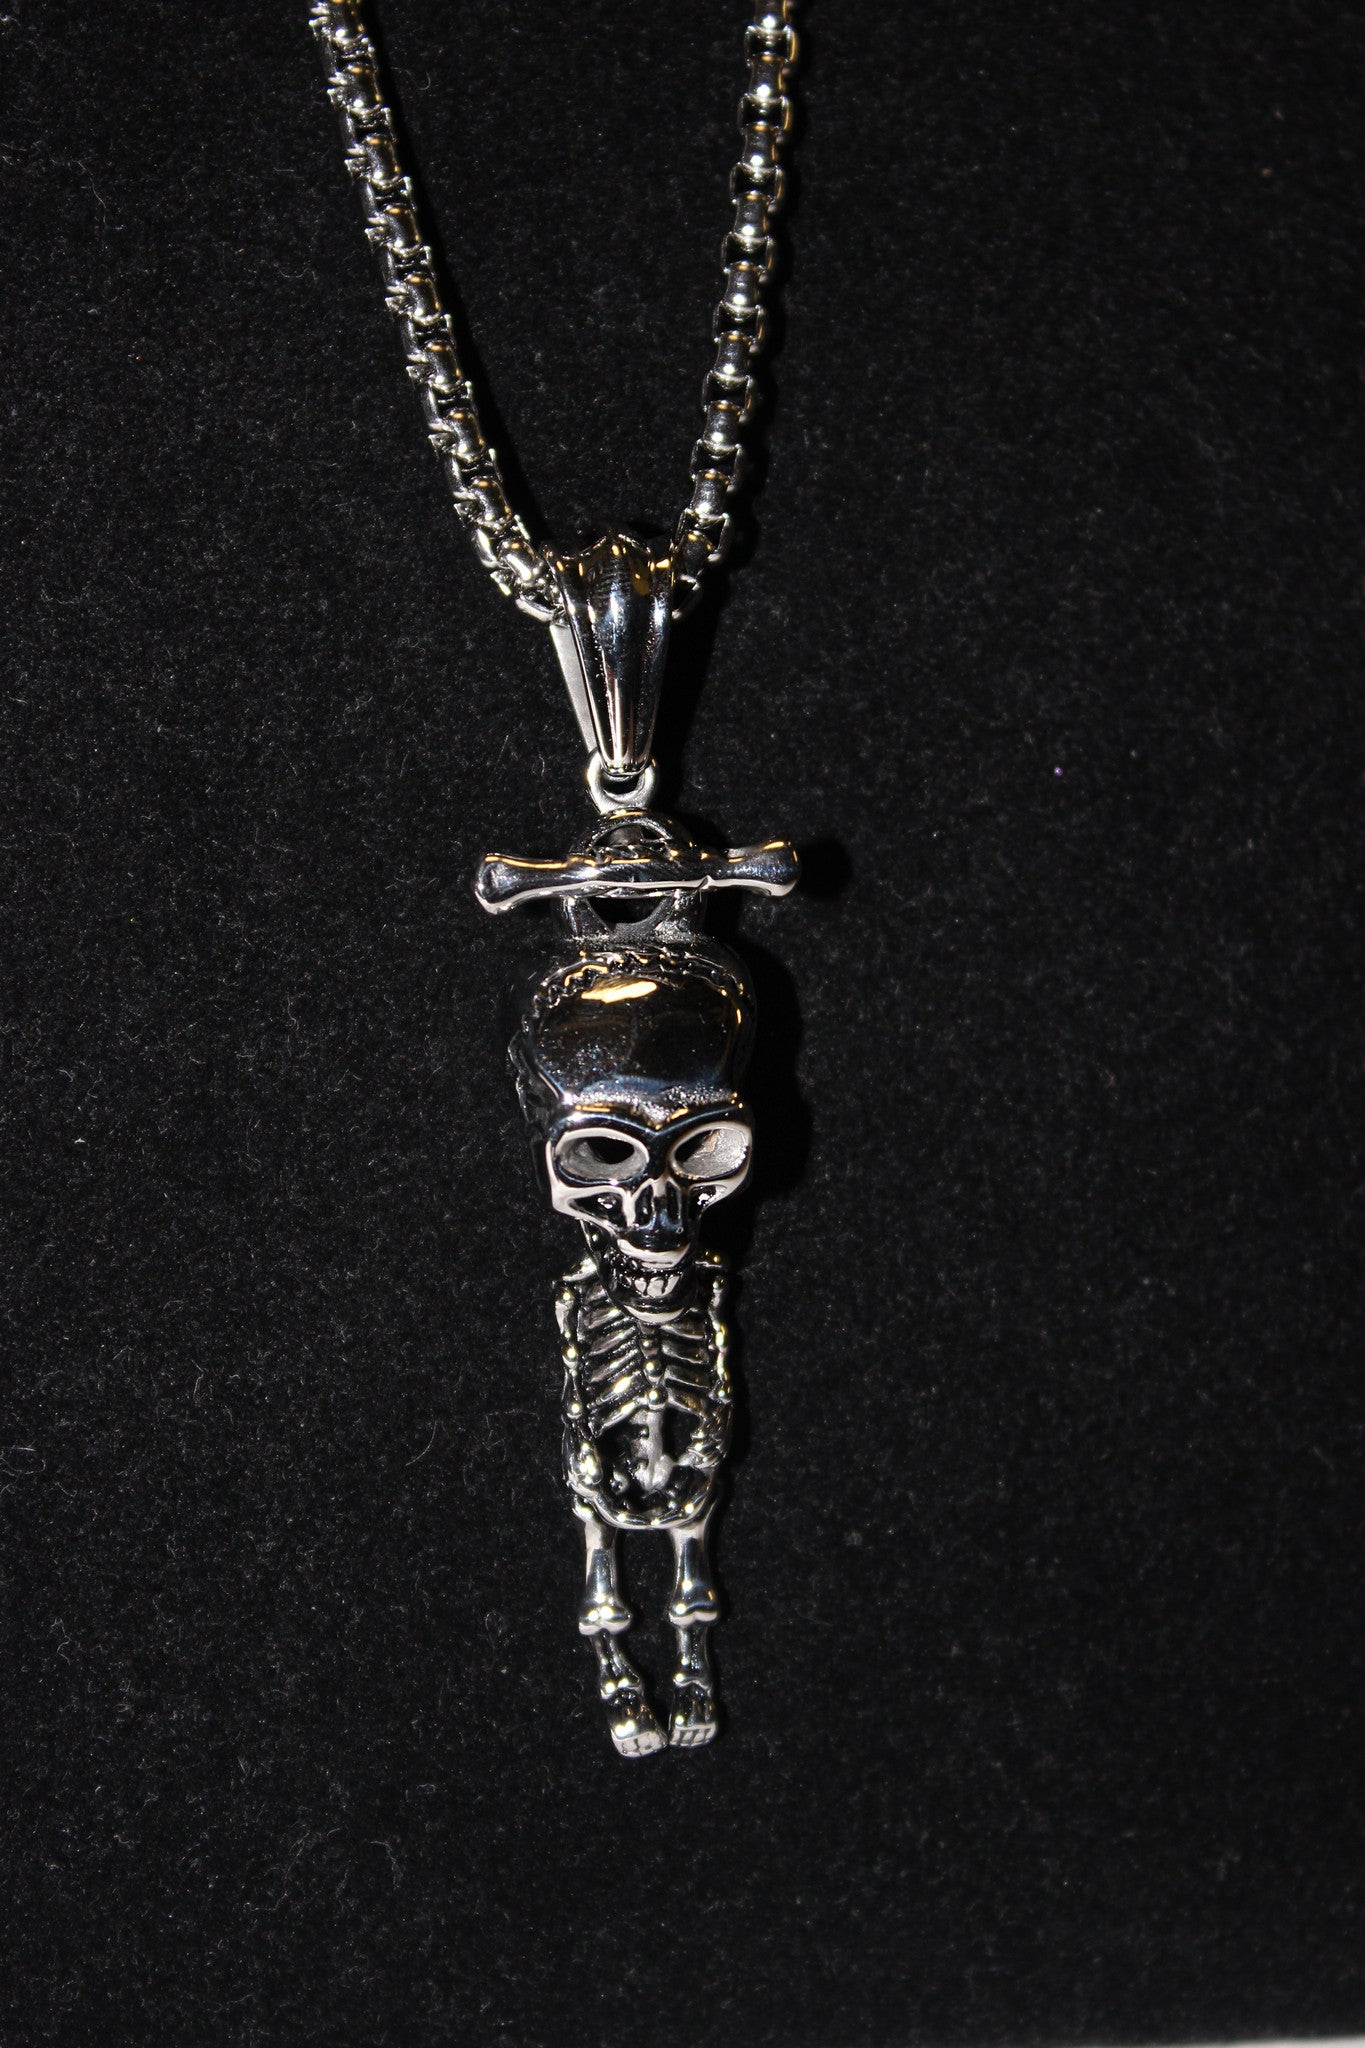 Stainless steel skeleton pendant udinc0462 until death inc stainless steel skeleton pendant udinc0462 aloadofball Image collections